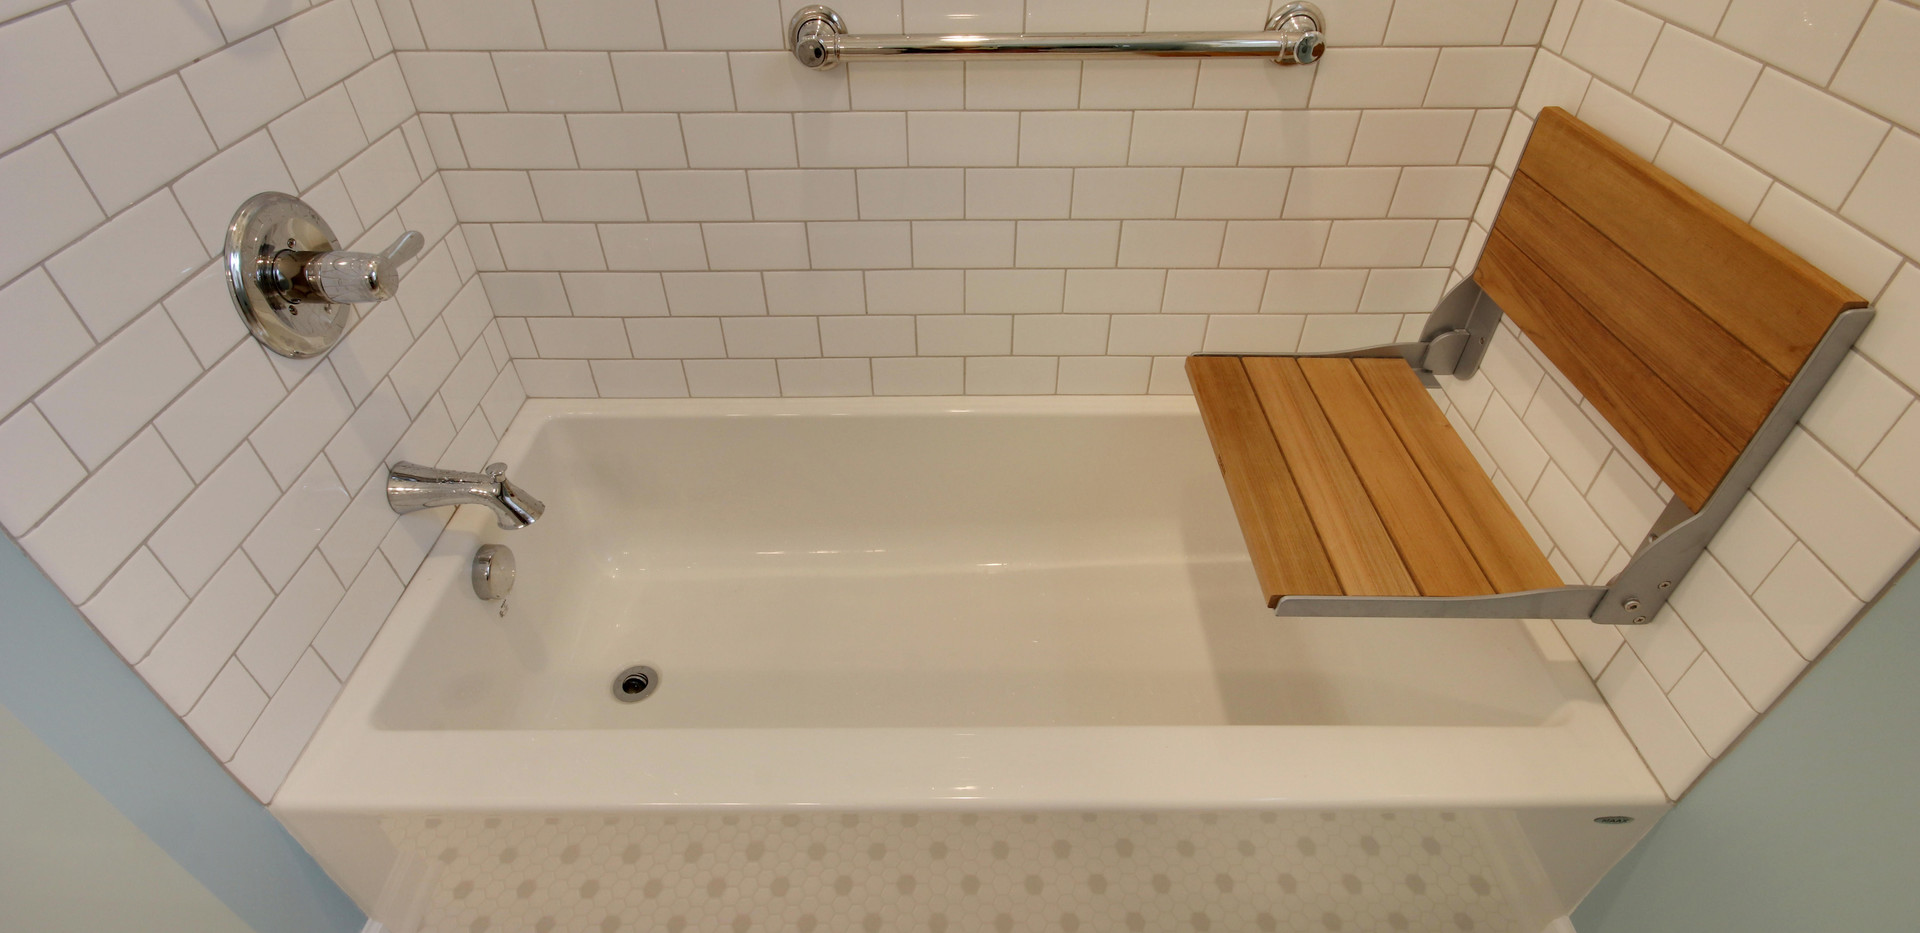 New tub shower bathroom remodel featuring a wood shower bench, grab bars, and white tile